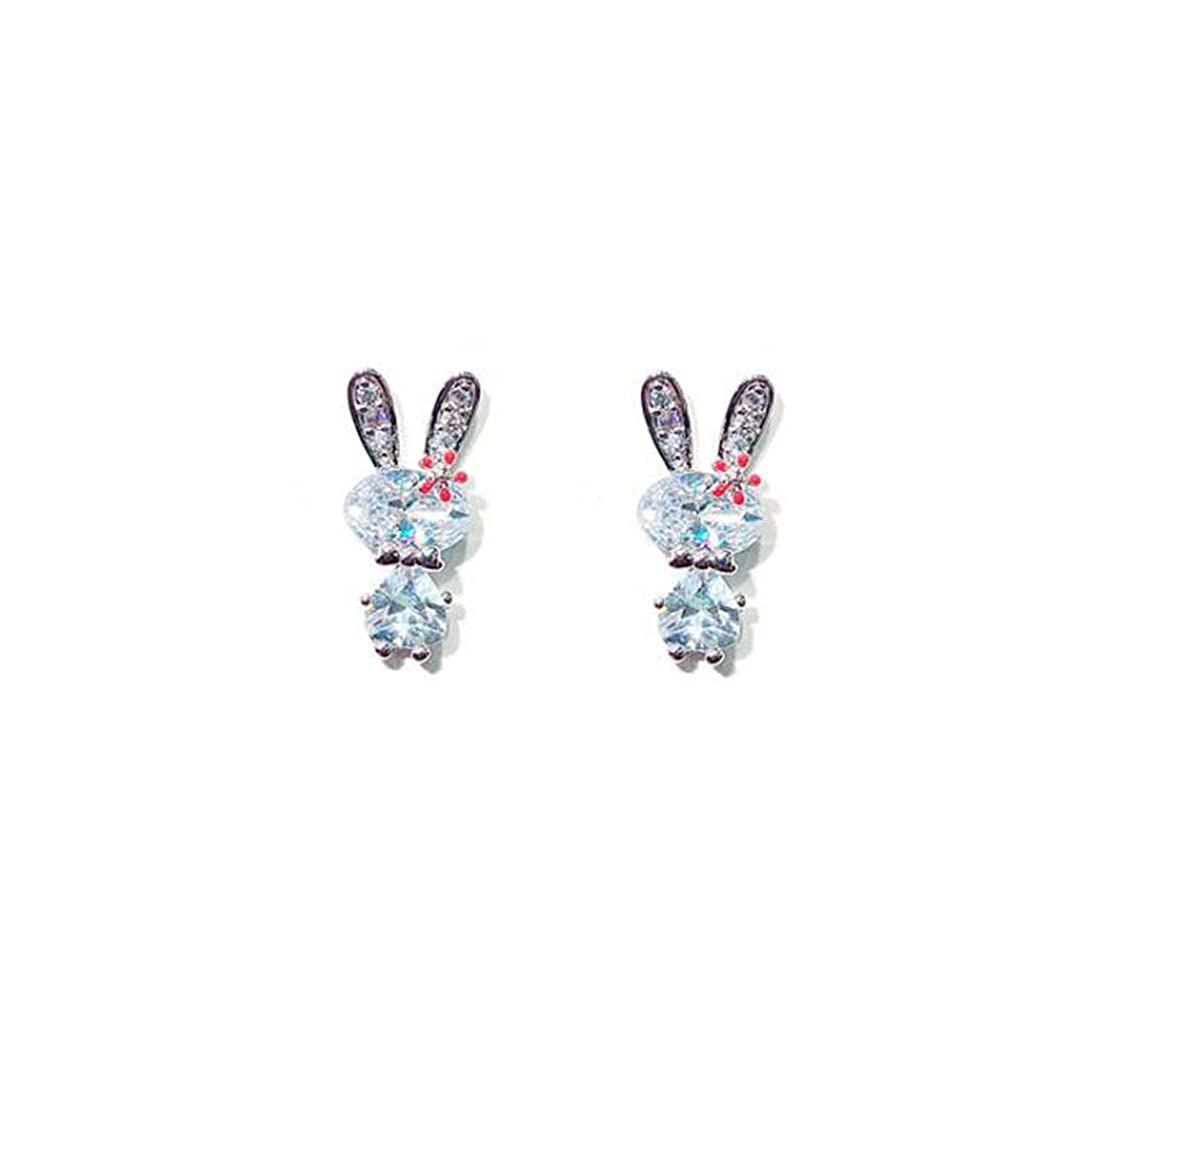 Silver Libaraba Crystal Accent Rabbit with Flower Stud Earrings with Heart Jewelry Box,Rabbit Earrings for Women